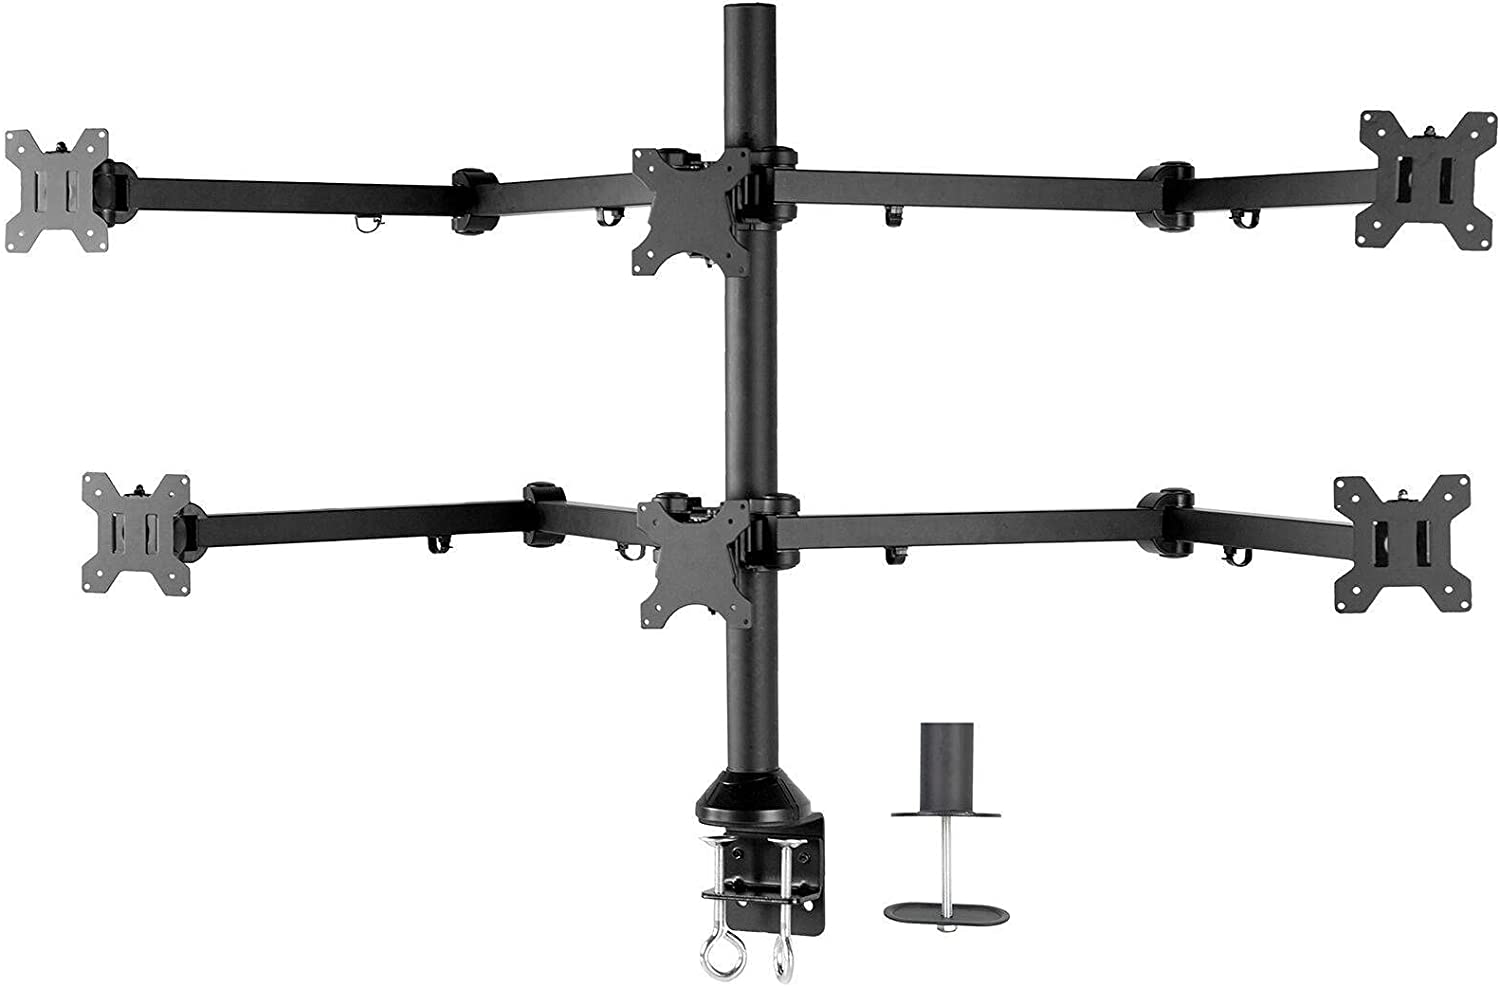 Steel Max 80% OFF Hex Monitor Desk Mount Adjustable Max 78% OFF Stand Screens 6 Six